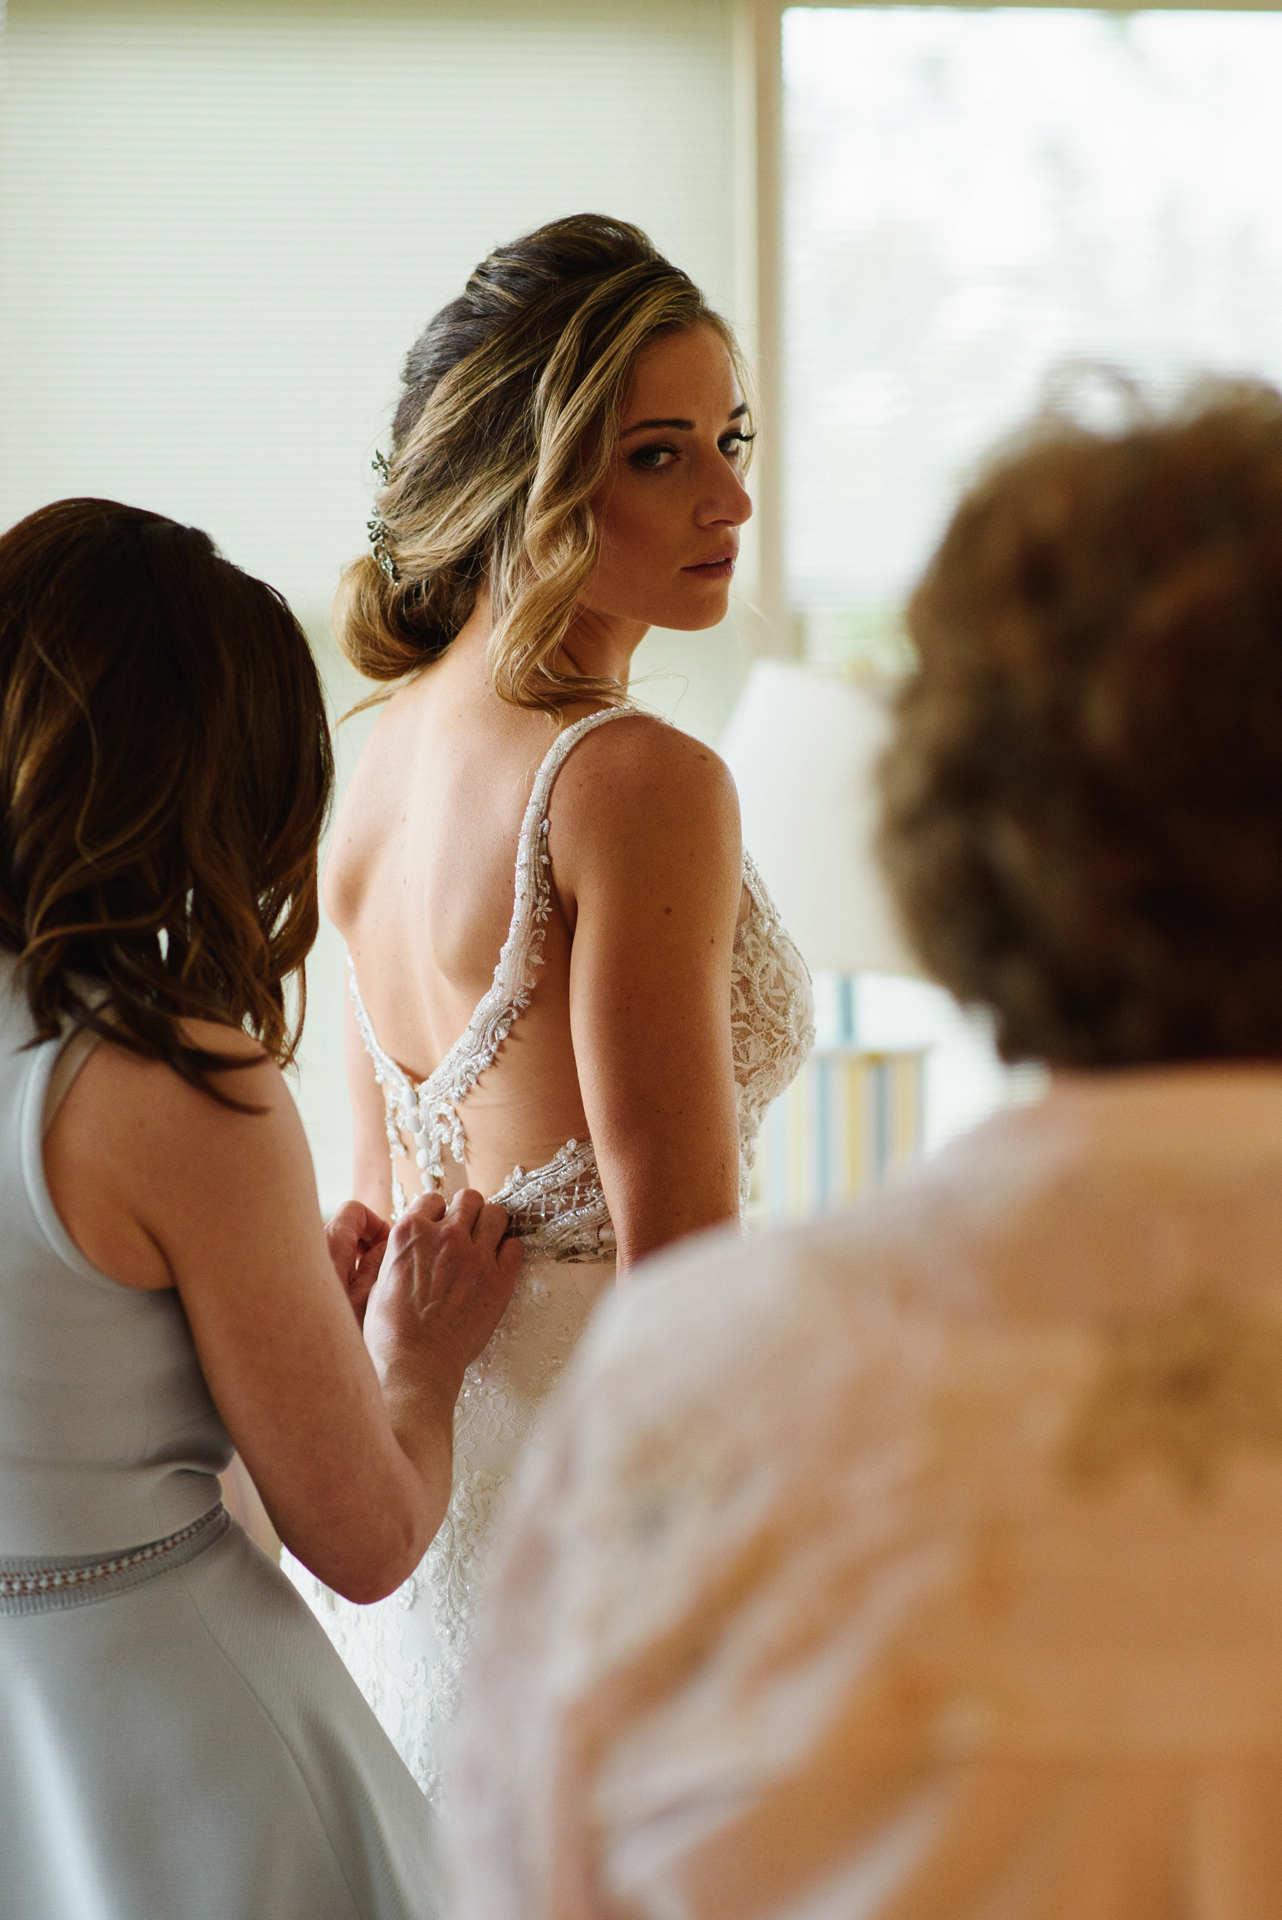 Corolla, North Carolina Elopement Bride Picture | Bride getting ready for her elopement wedding with friends and the mother of the bride